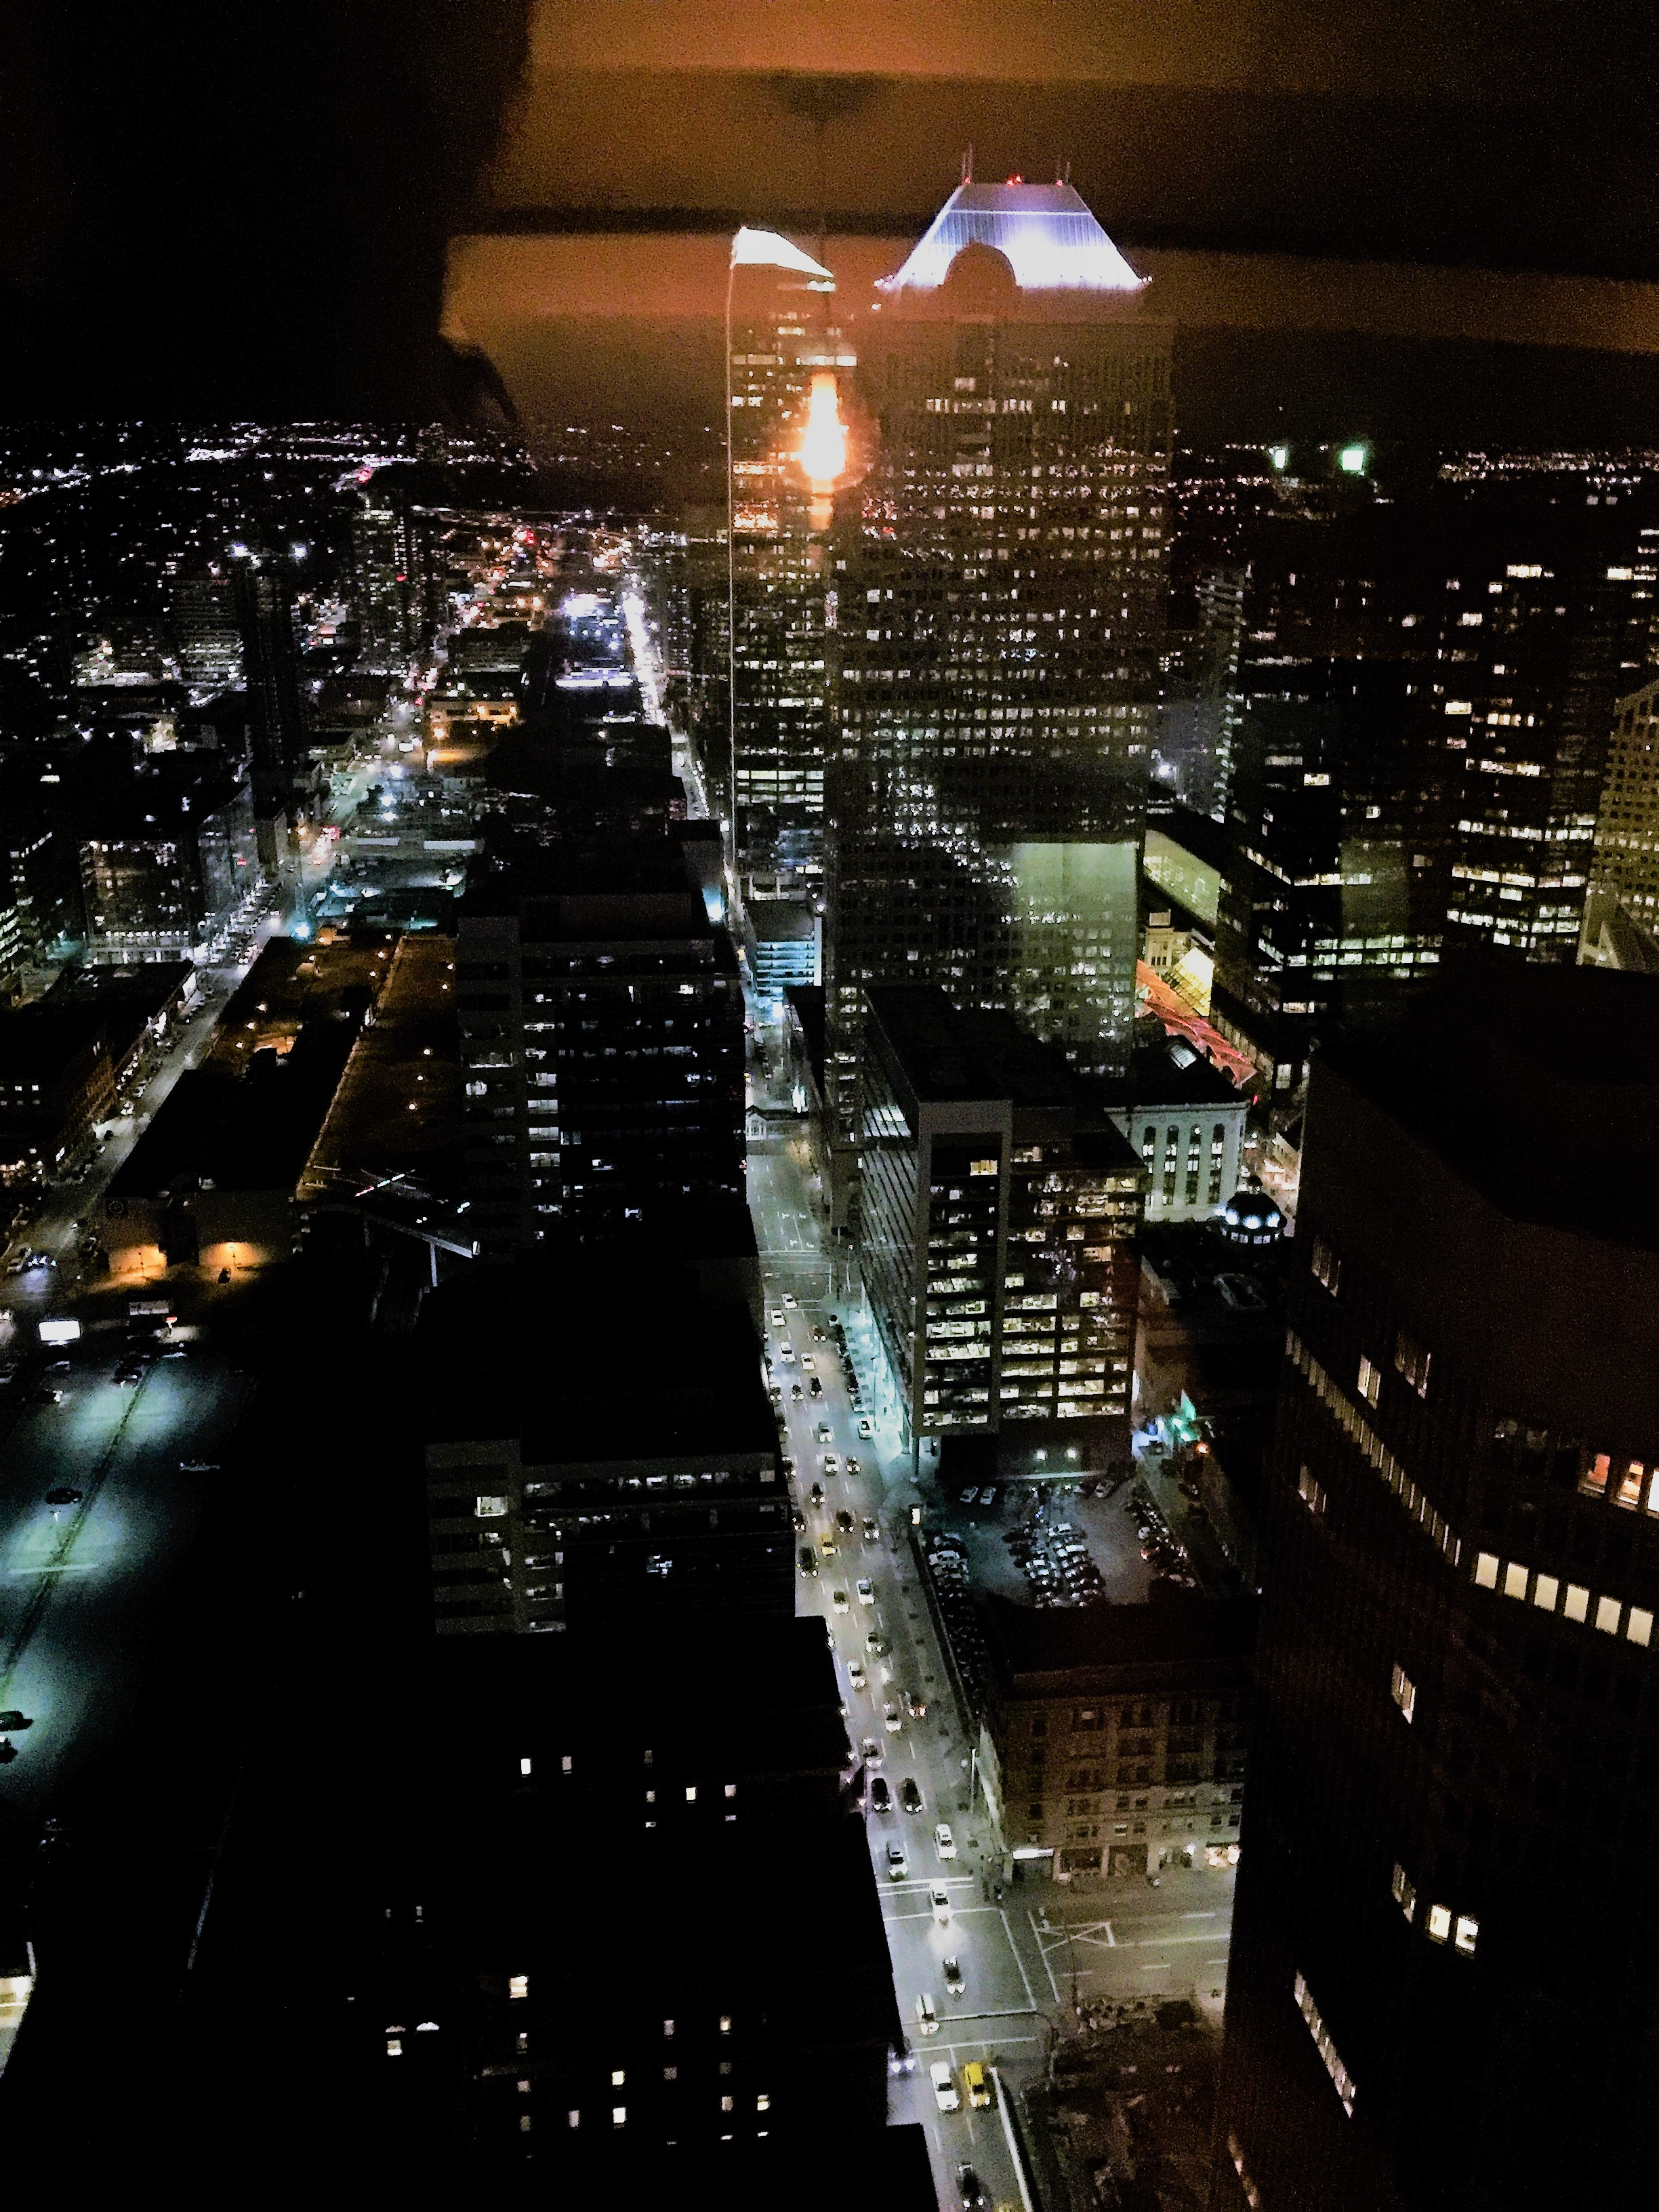 View from the Calgary Tower